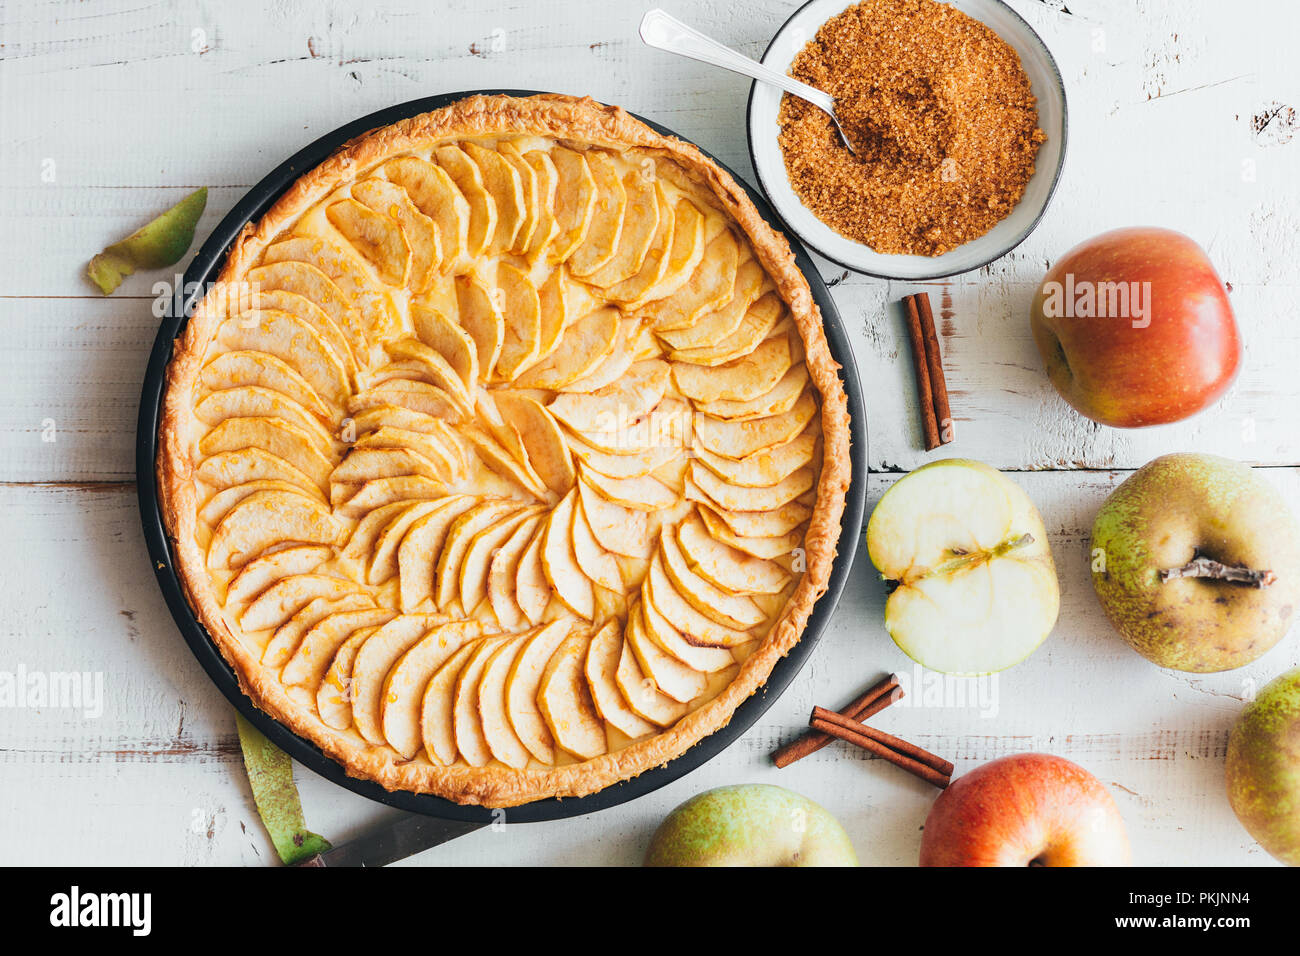 Freshly baked apple pie tart with custard filling on a rustic white wooden background. Top view - Stock Image